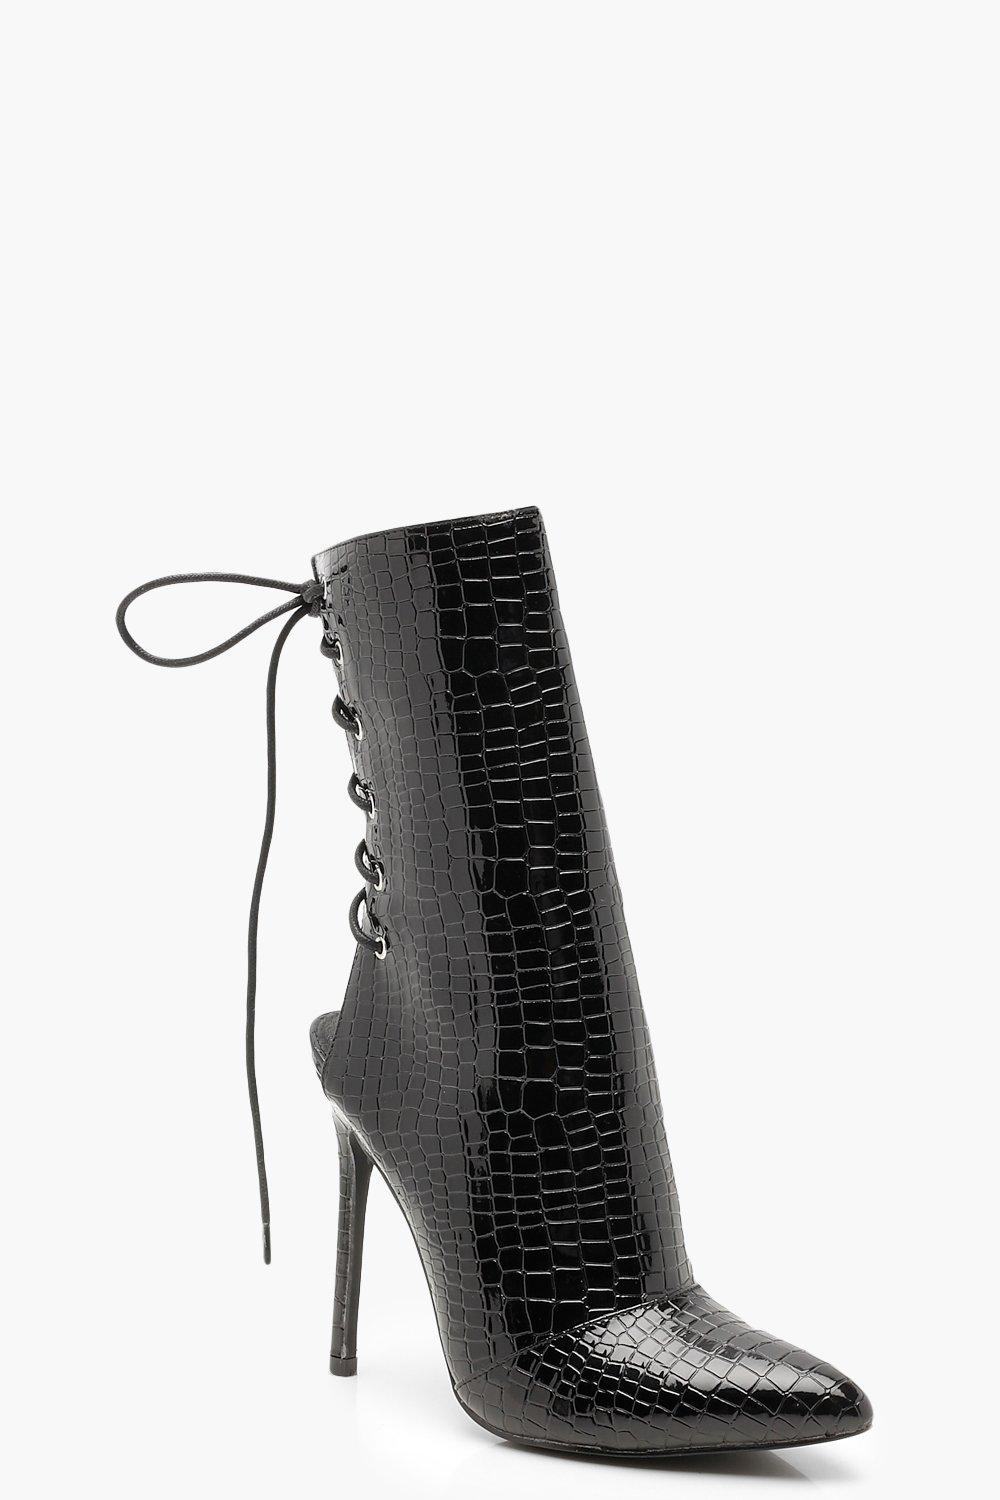 bbbe1ded33a Patent Croc Effect Lace Up Back Sock Boots | Boohoo